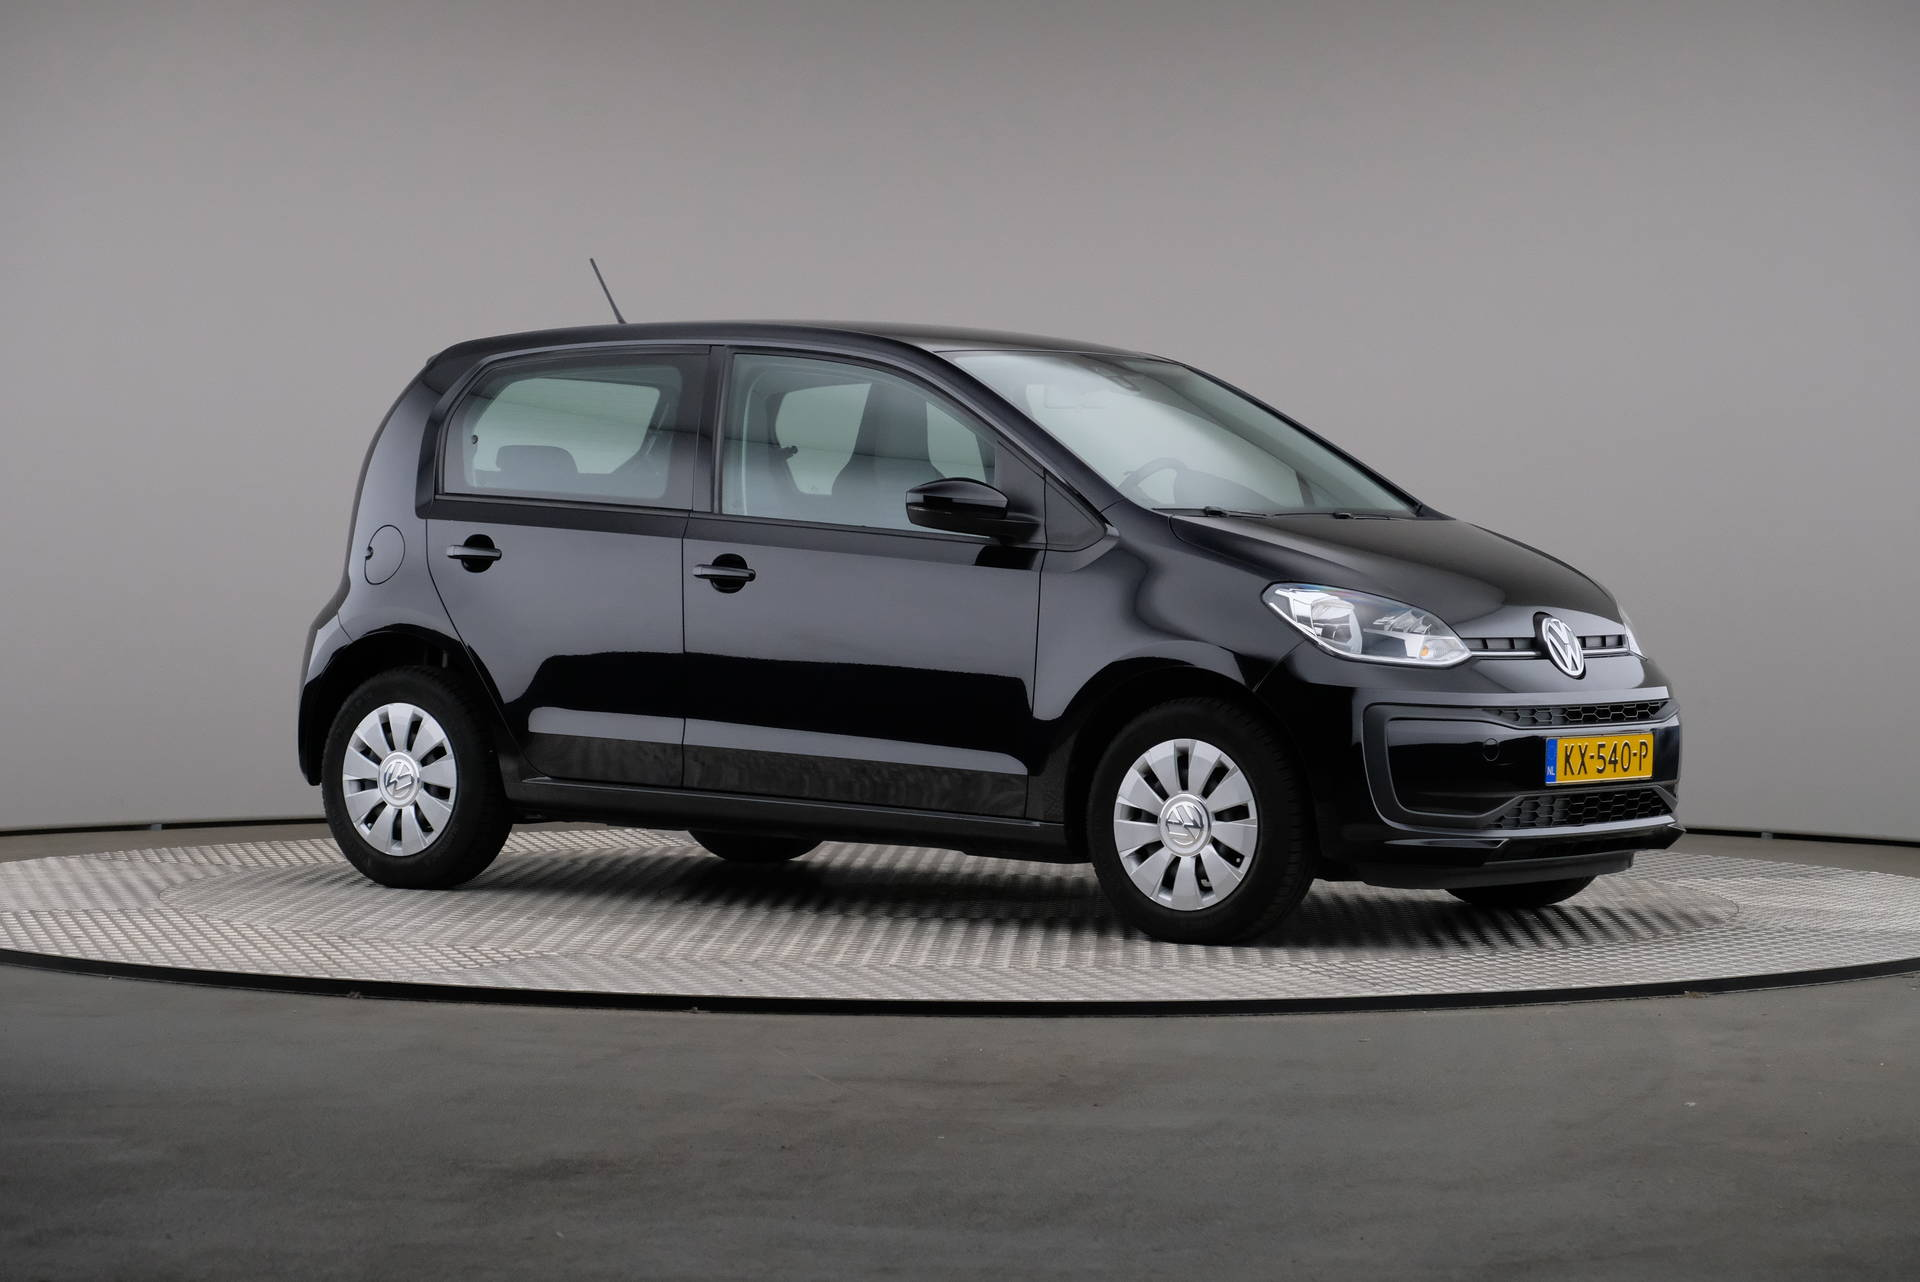 Volkswagen up! 1.0 44kW Move up! BlueMotion Technology, Airconditioning, 360-image27